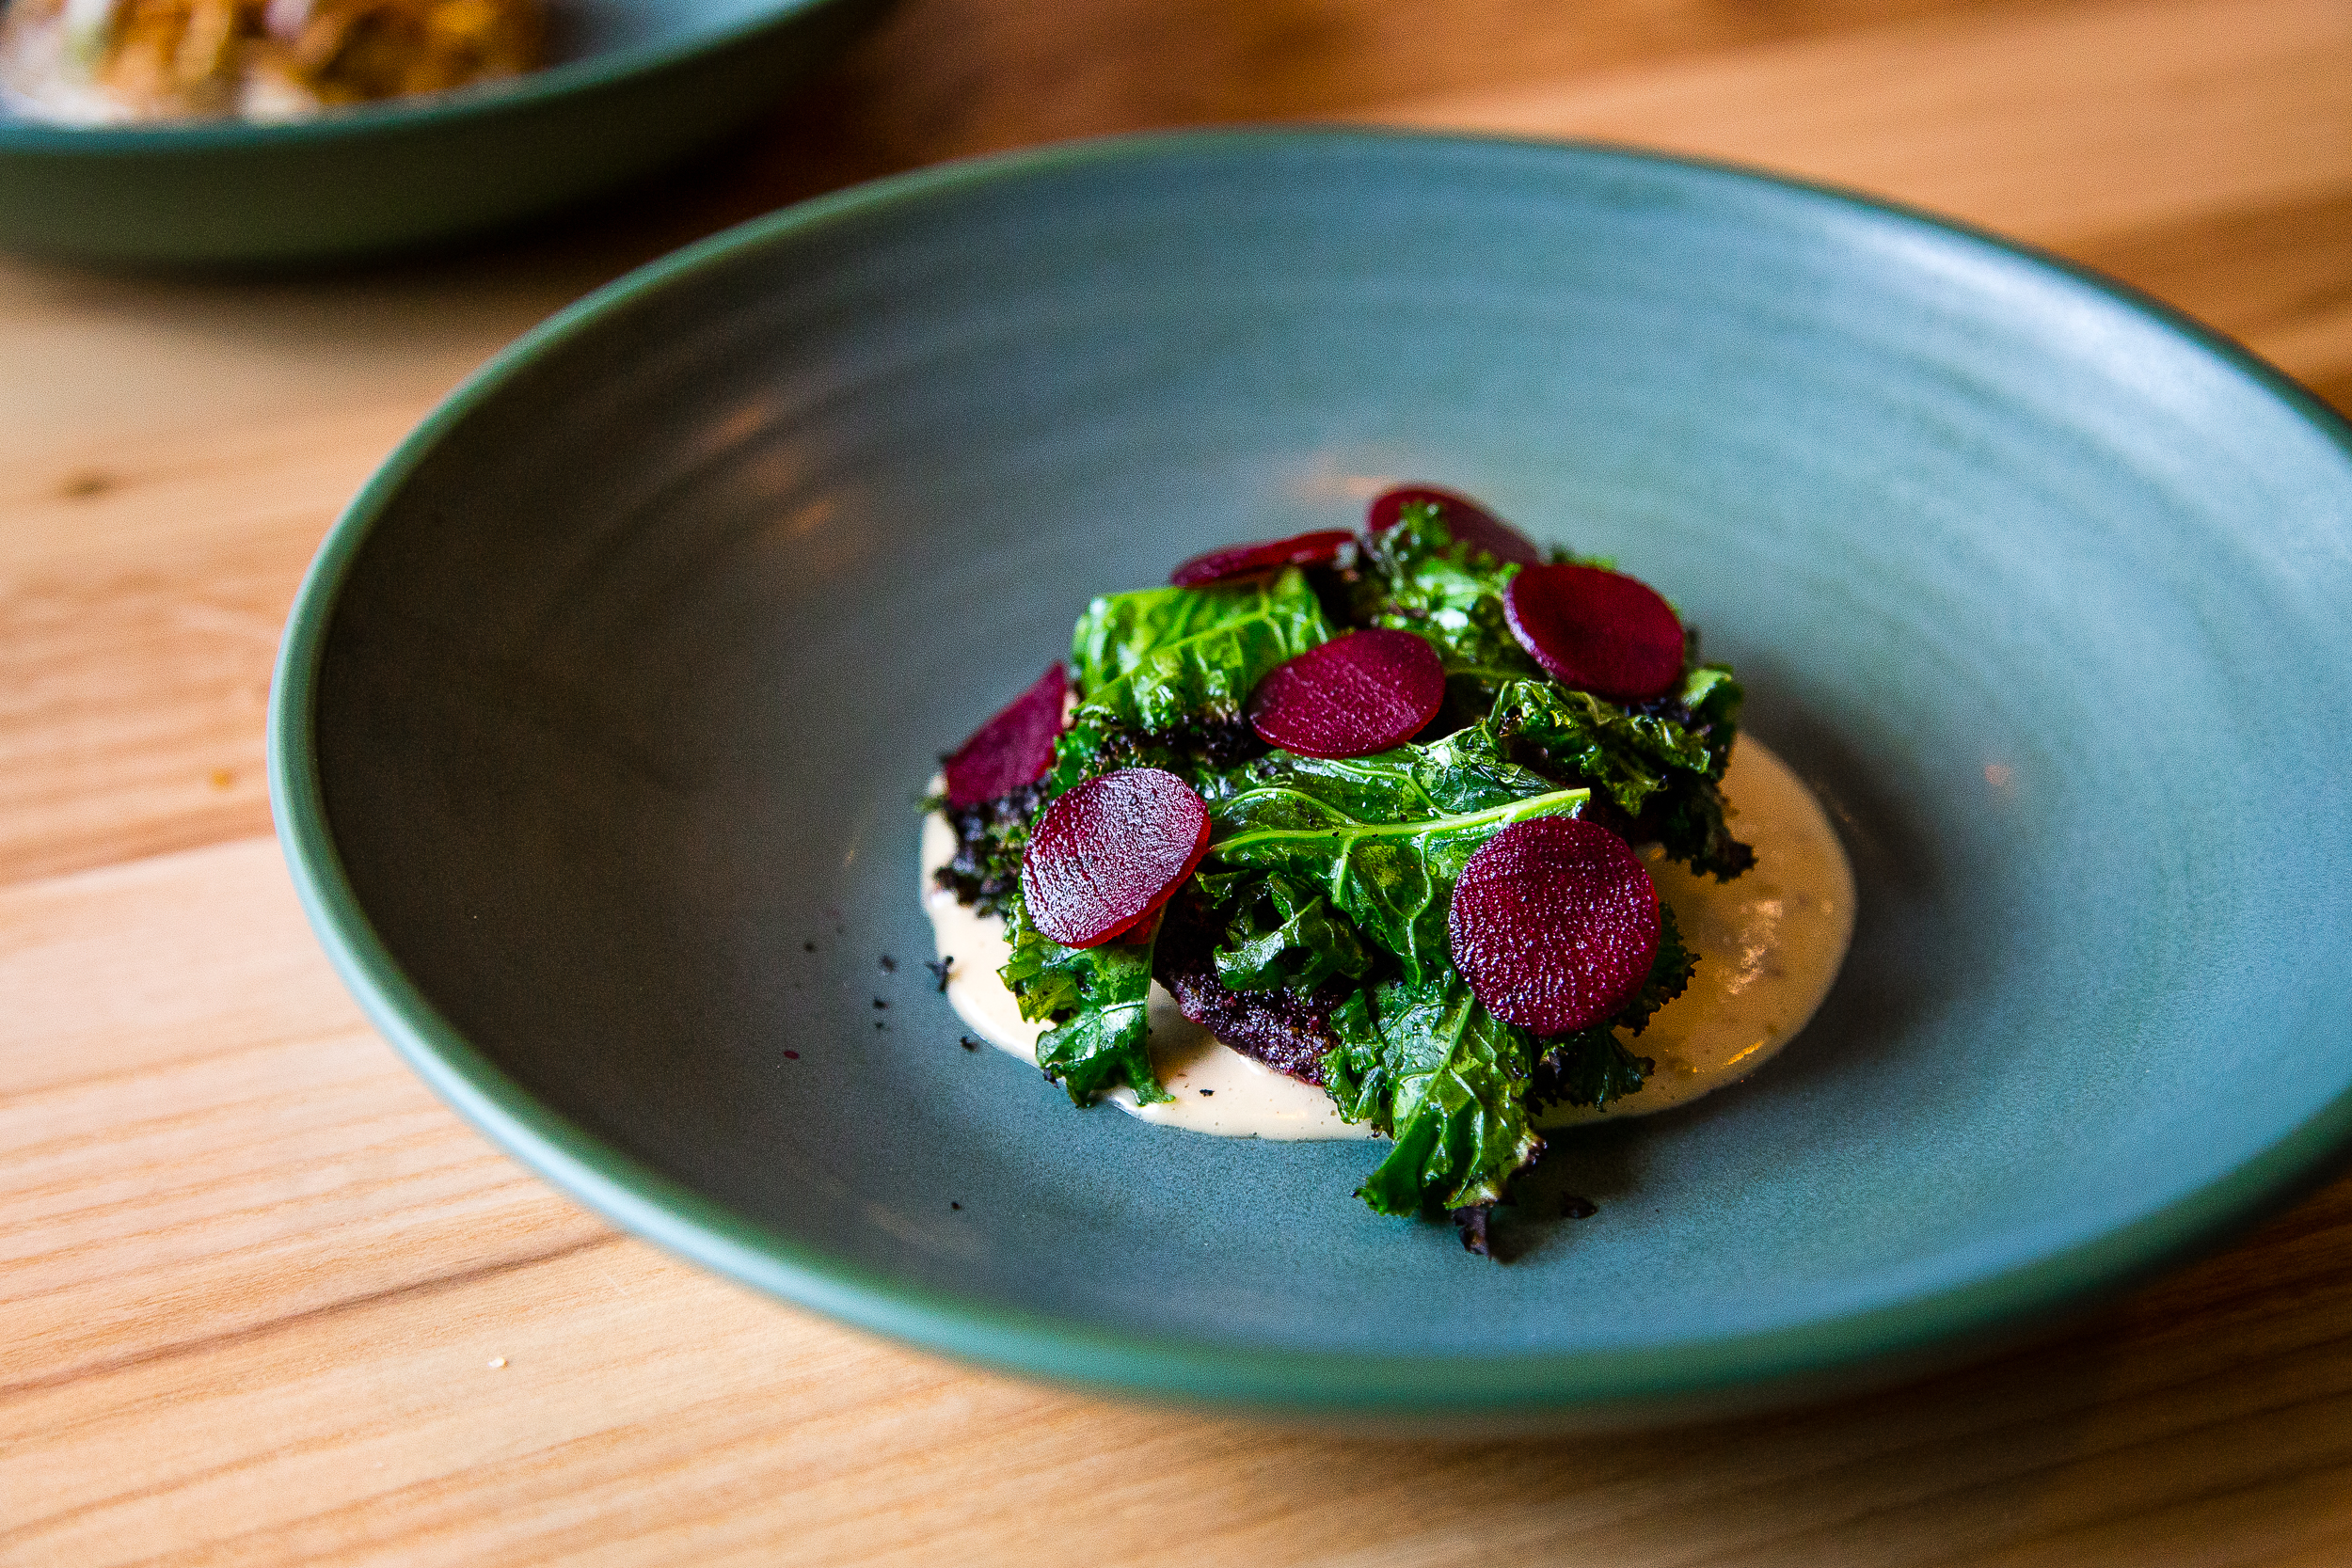 Roasted beets, charred kale, mustard (in place of duck confit)